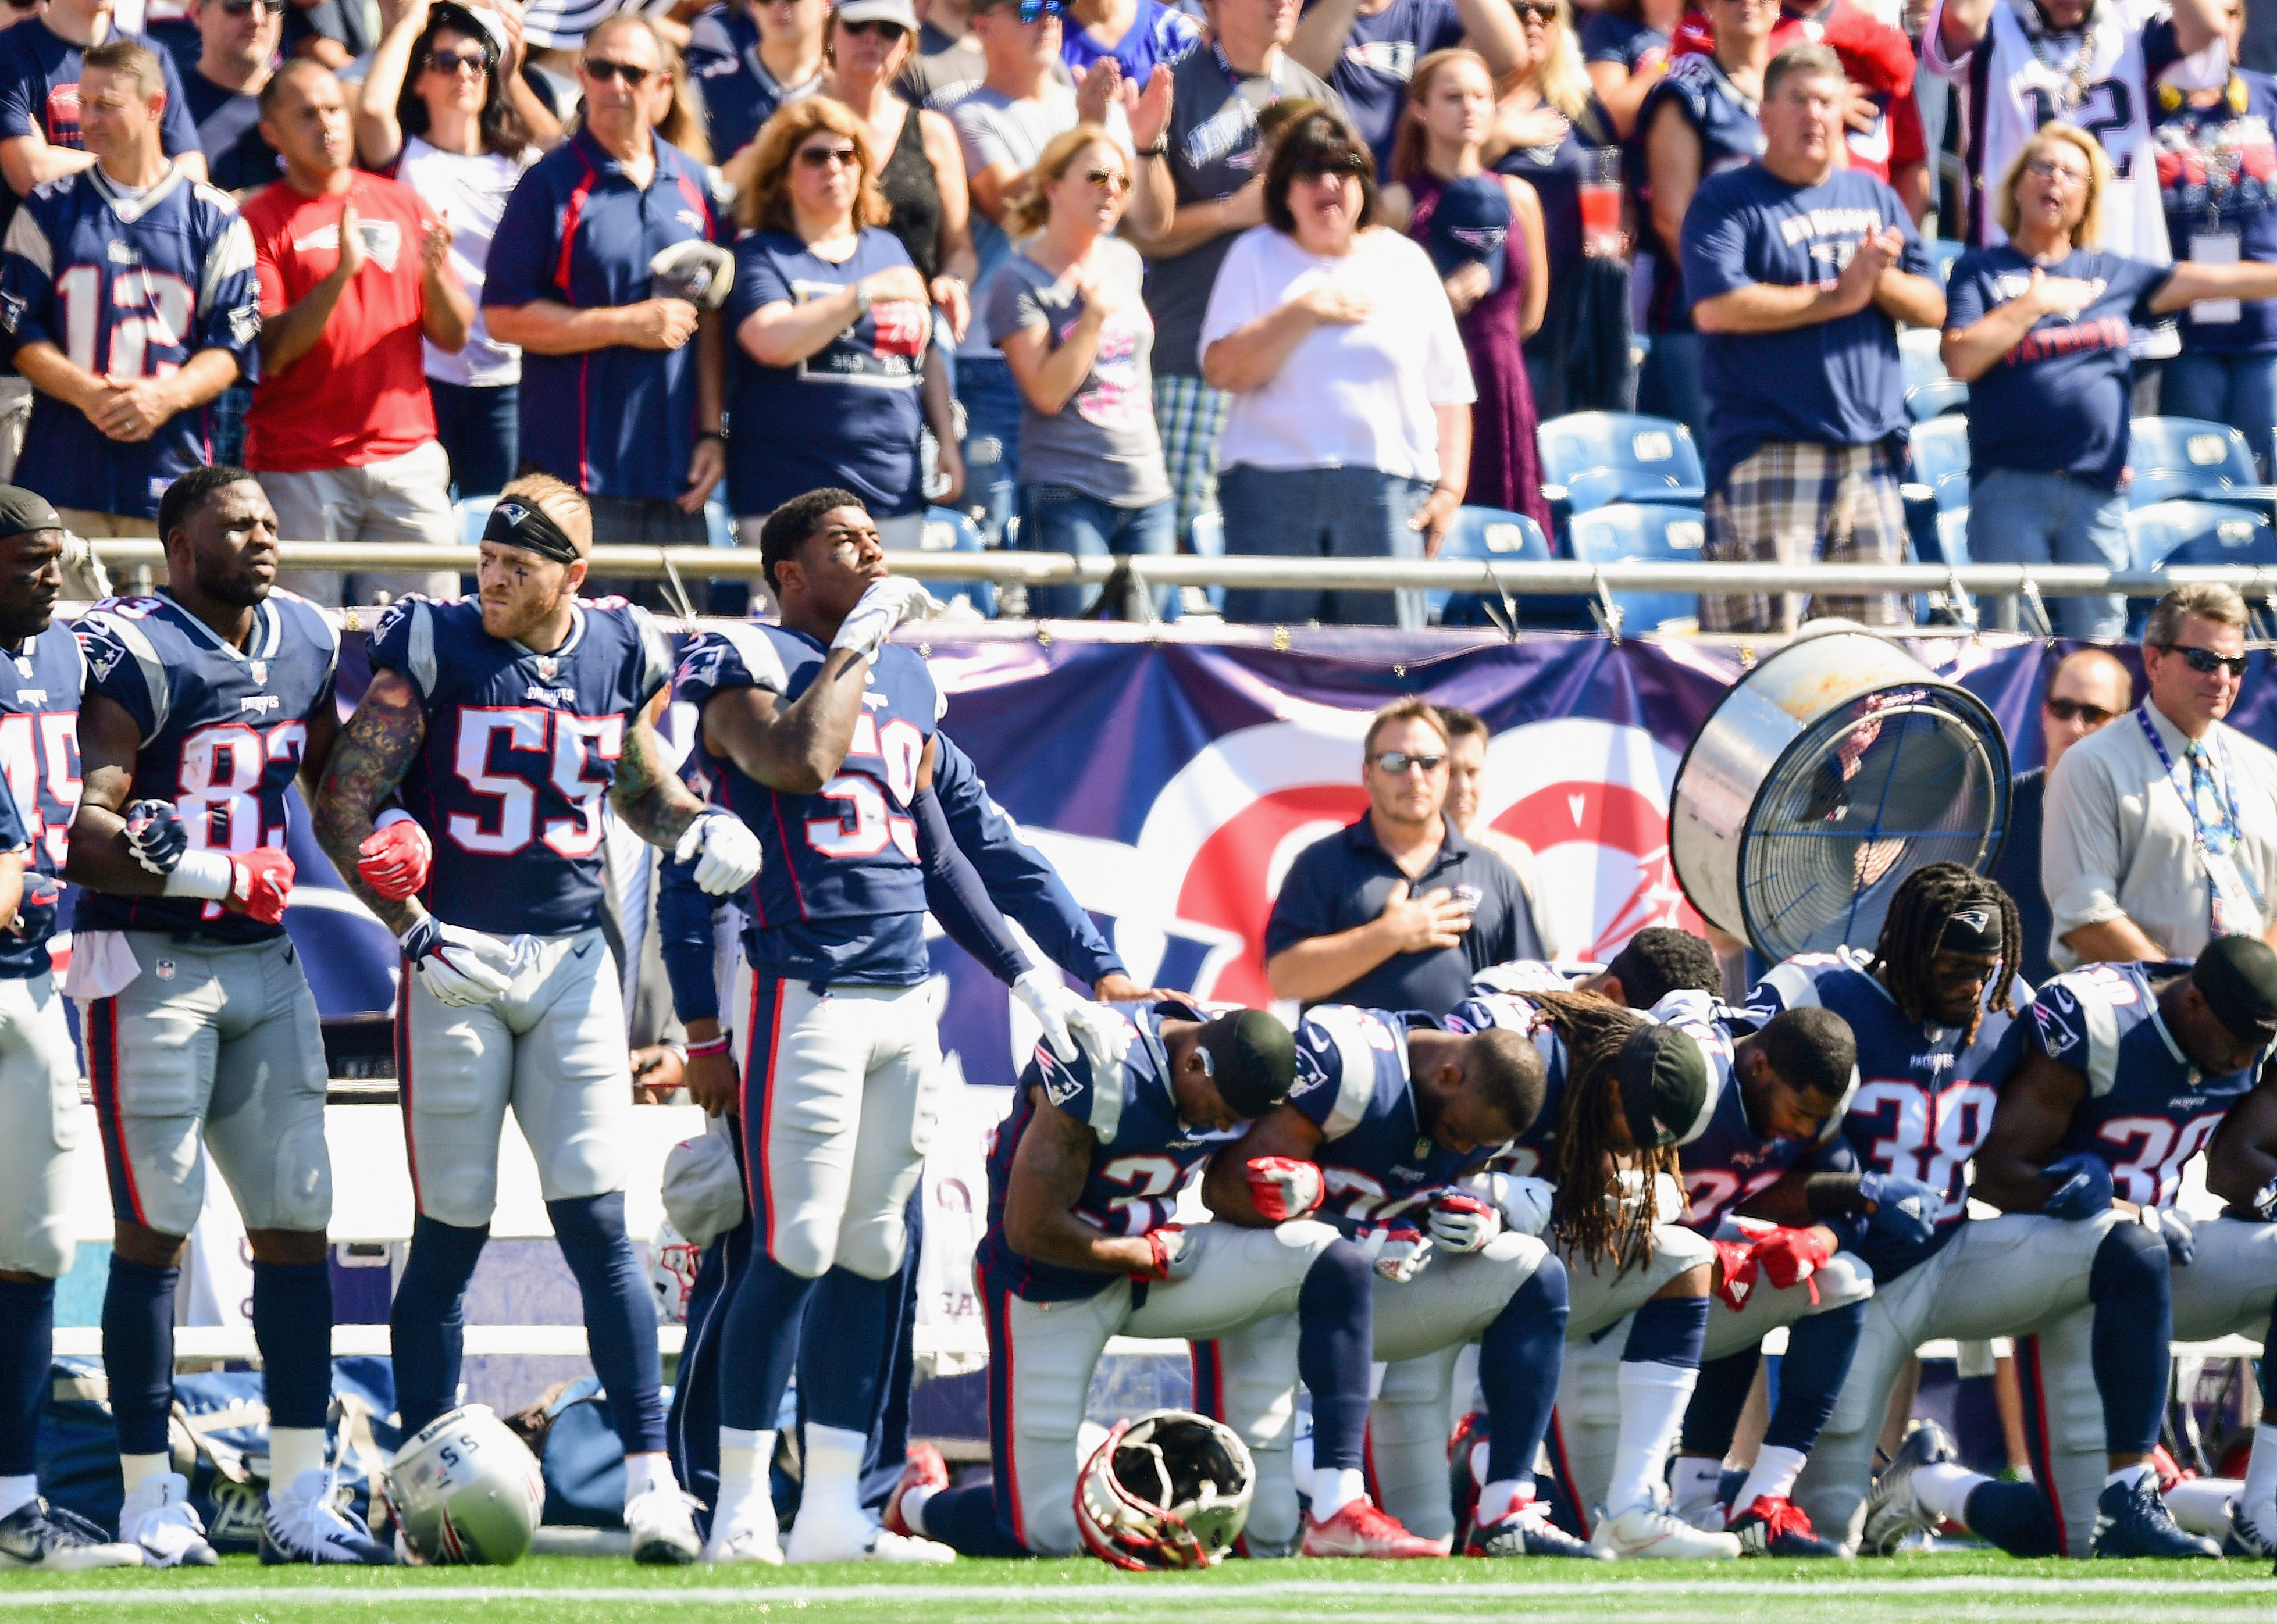 DirecTV allowing National Football League refunds around player protests